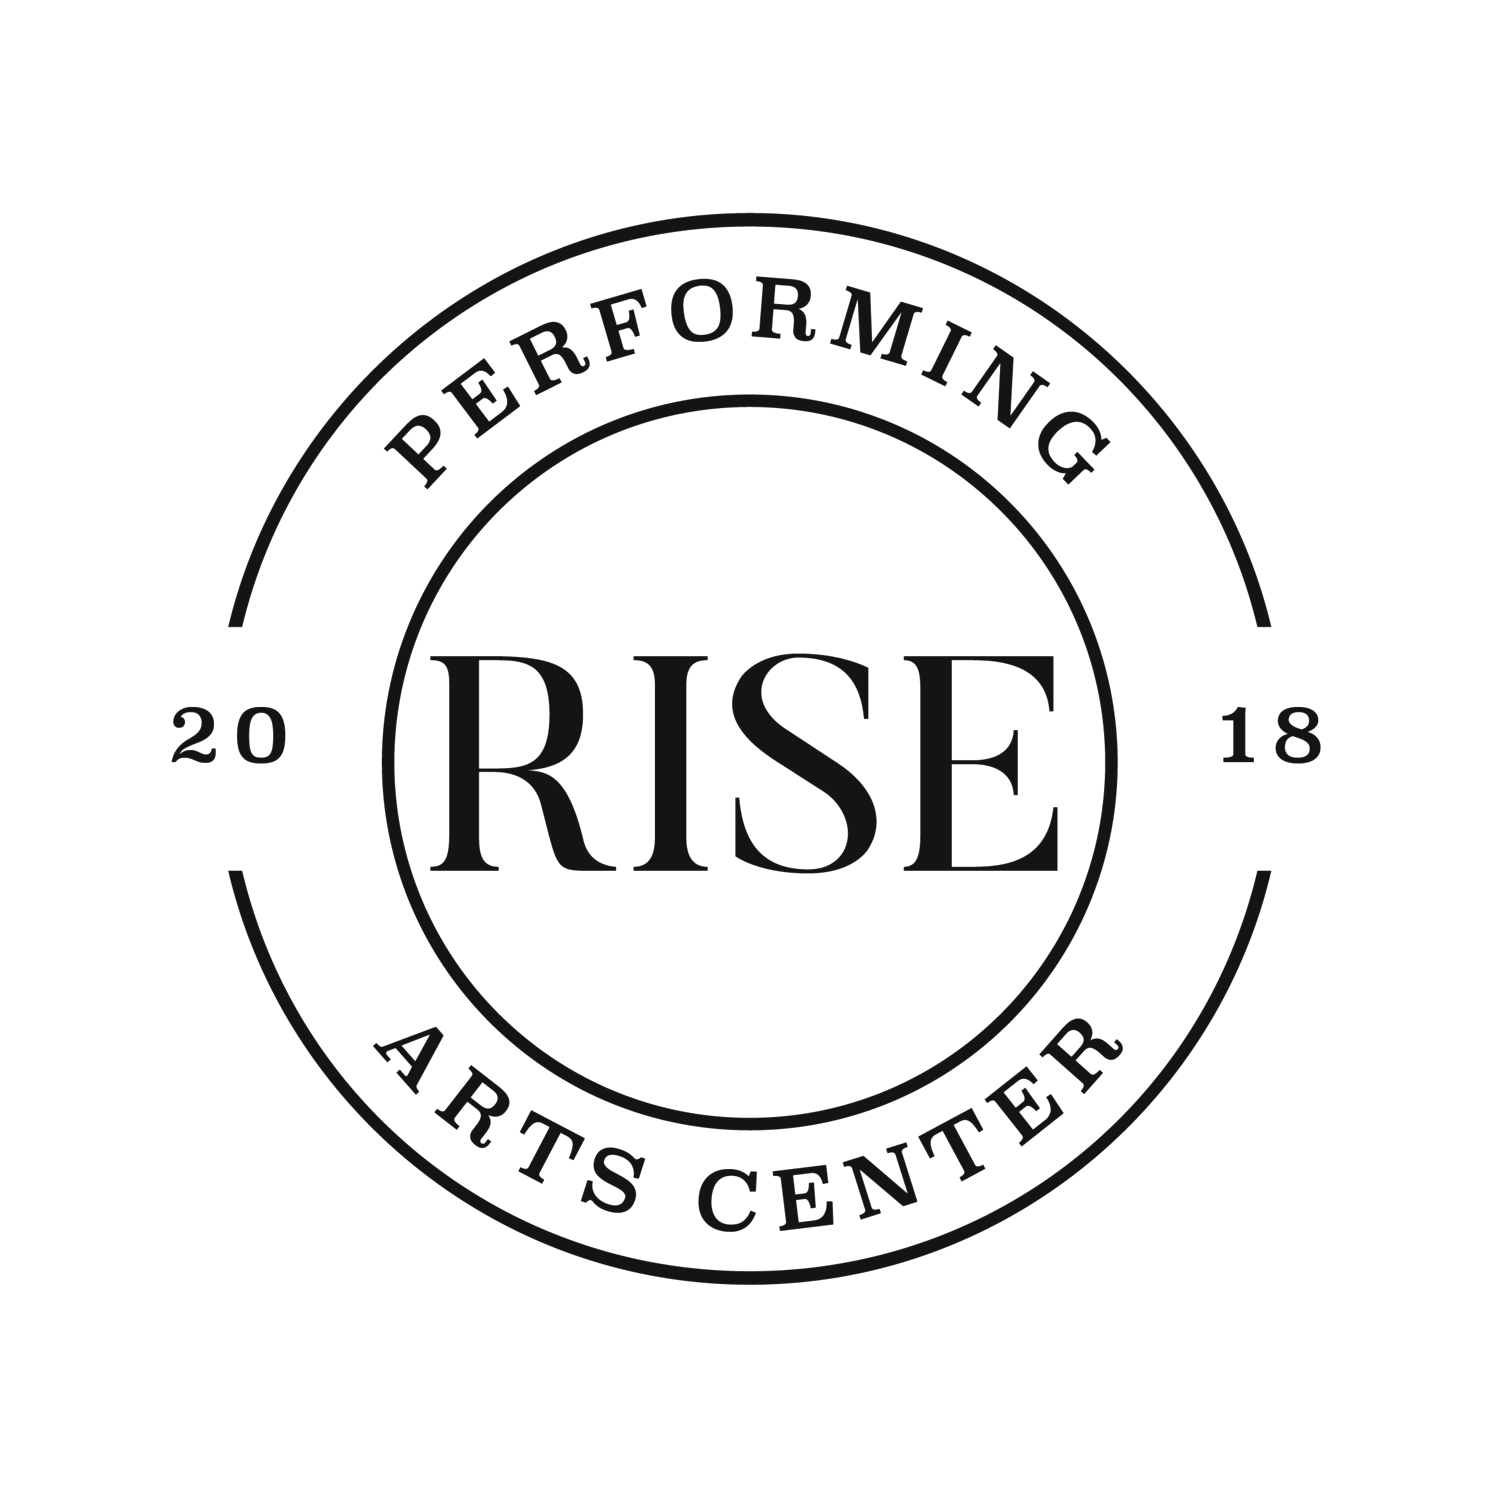 RISE Performing Arts Center